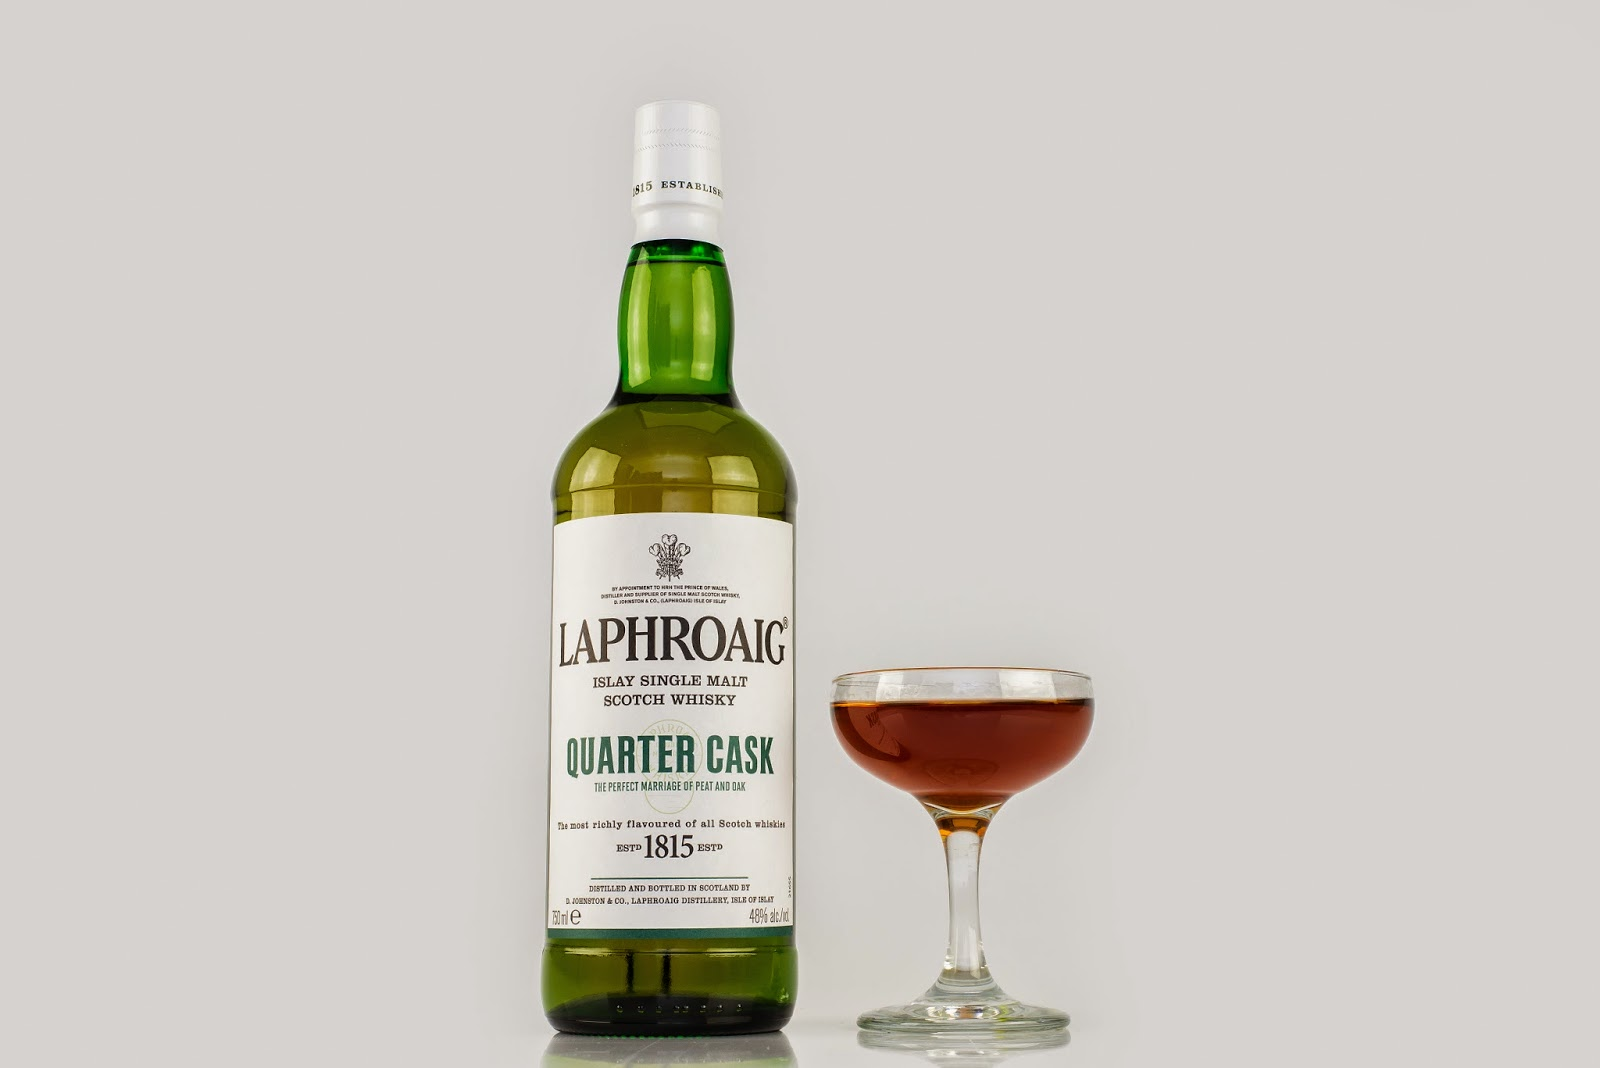 Laphroaig Quarter Cask cocktail